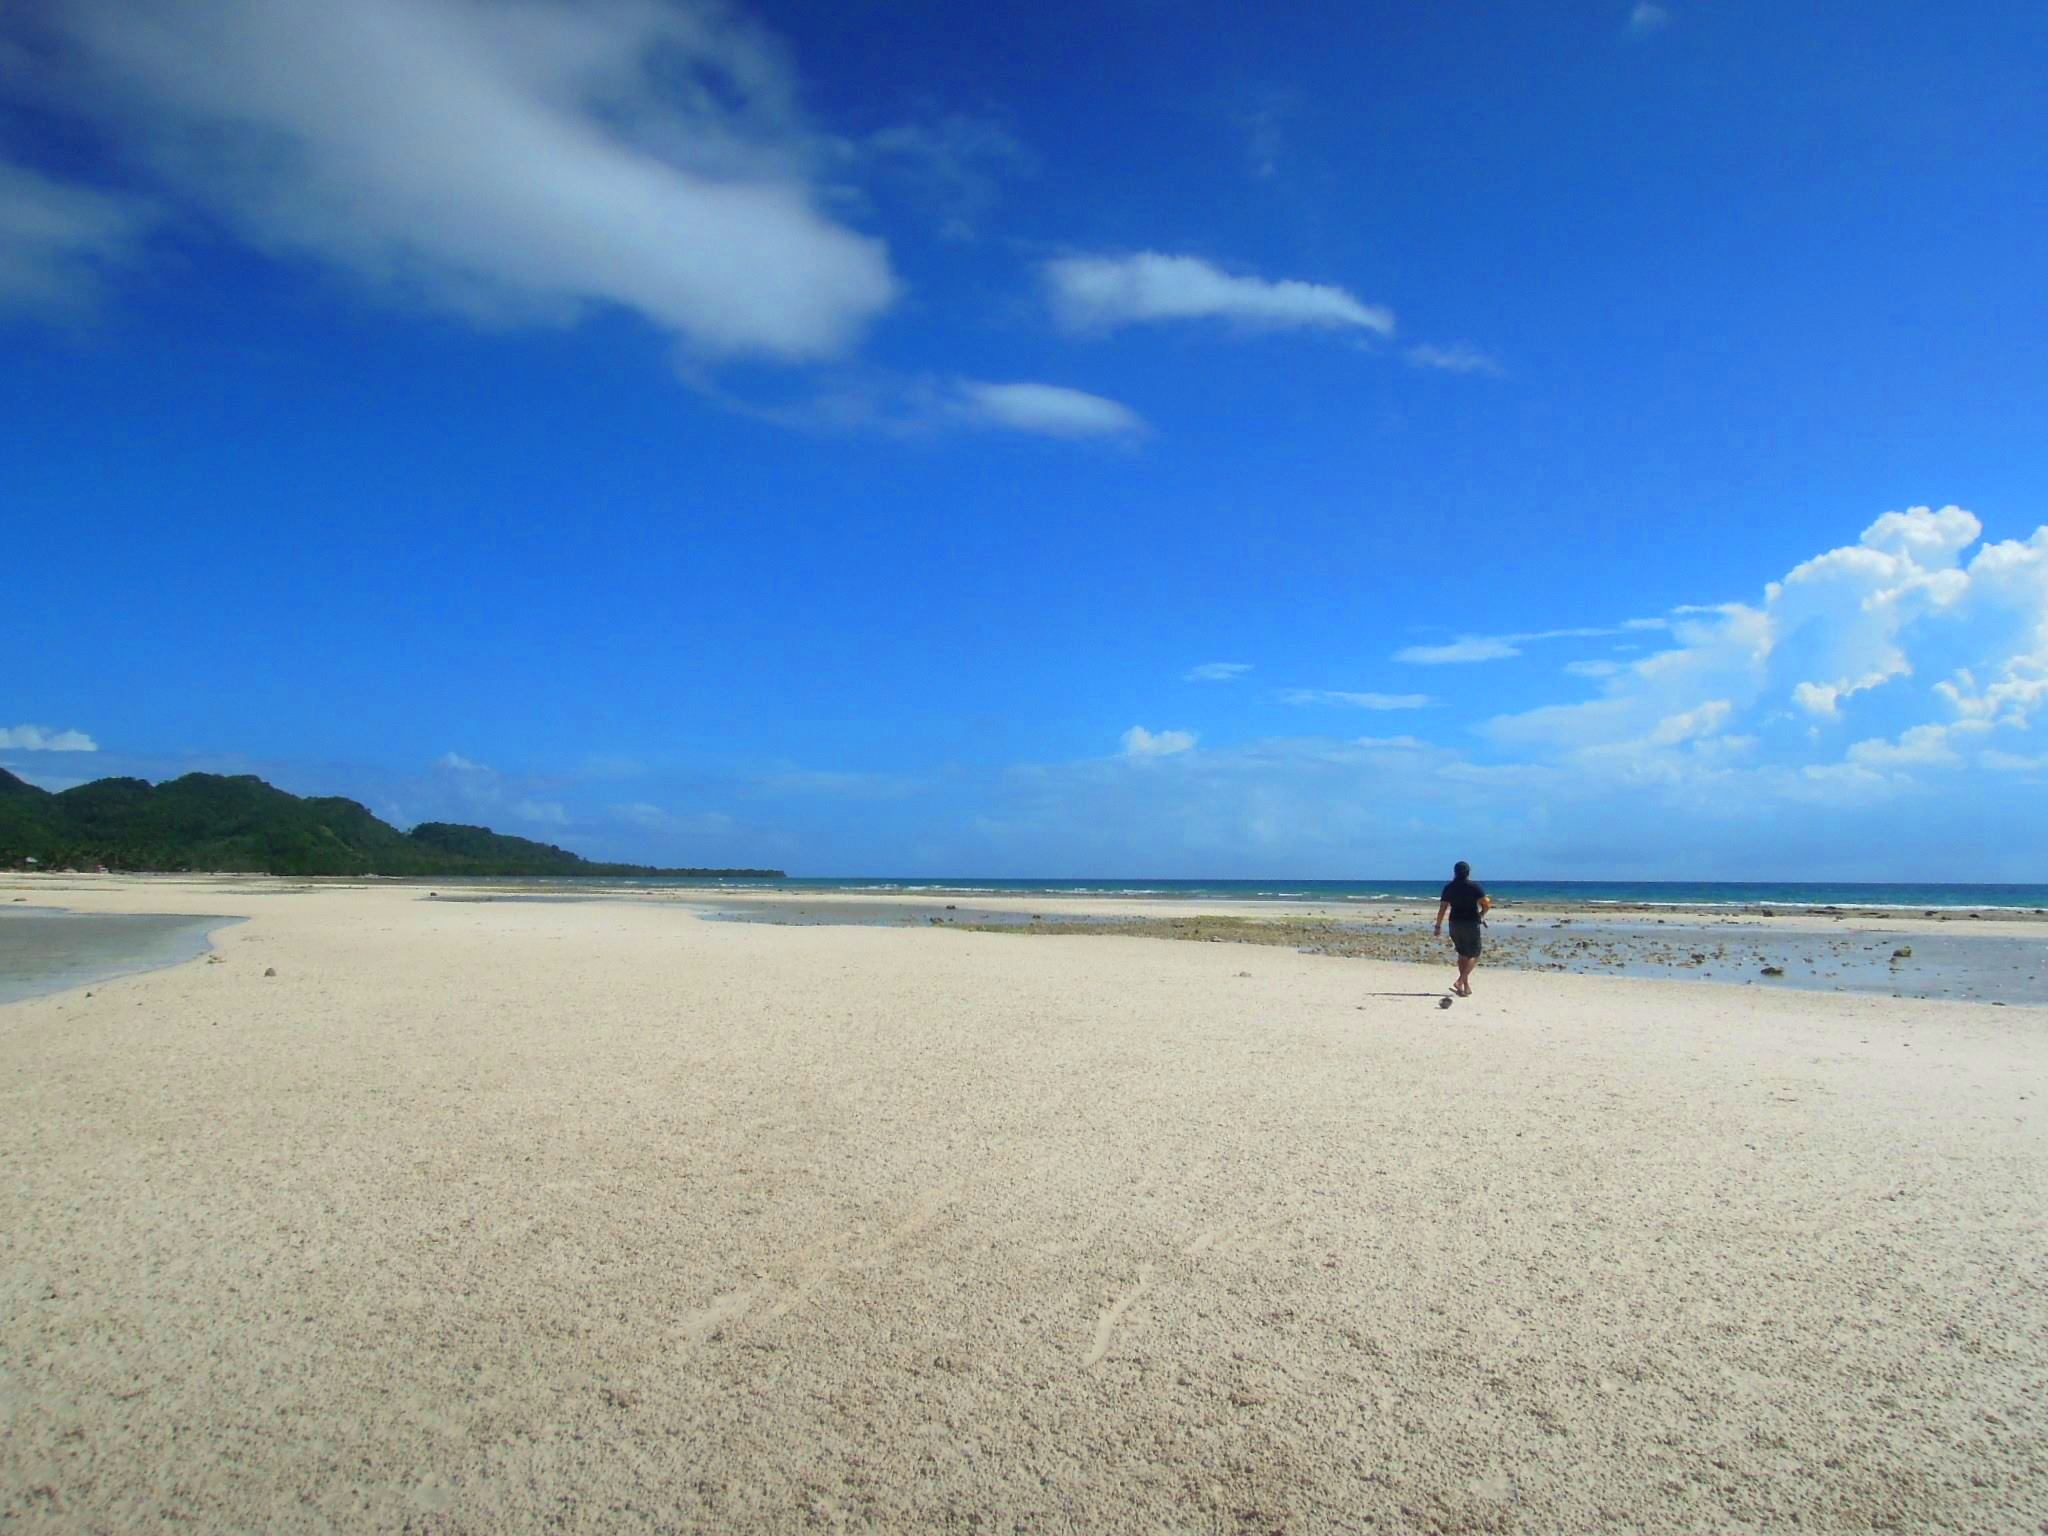 PRISTINE AND POWDERY. Quinale Beach in Anda has fine white sand comparable to Boracay's and Panglao'u0080u0099s. Photo by Ros Flores